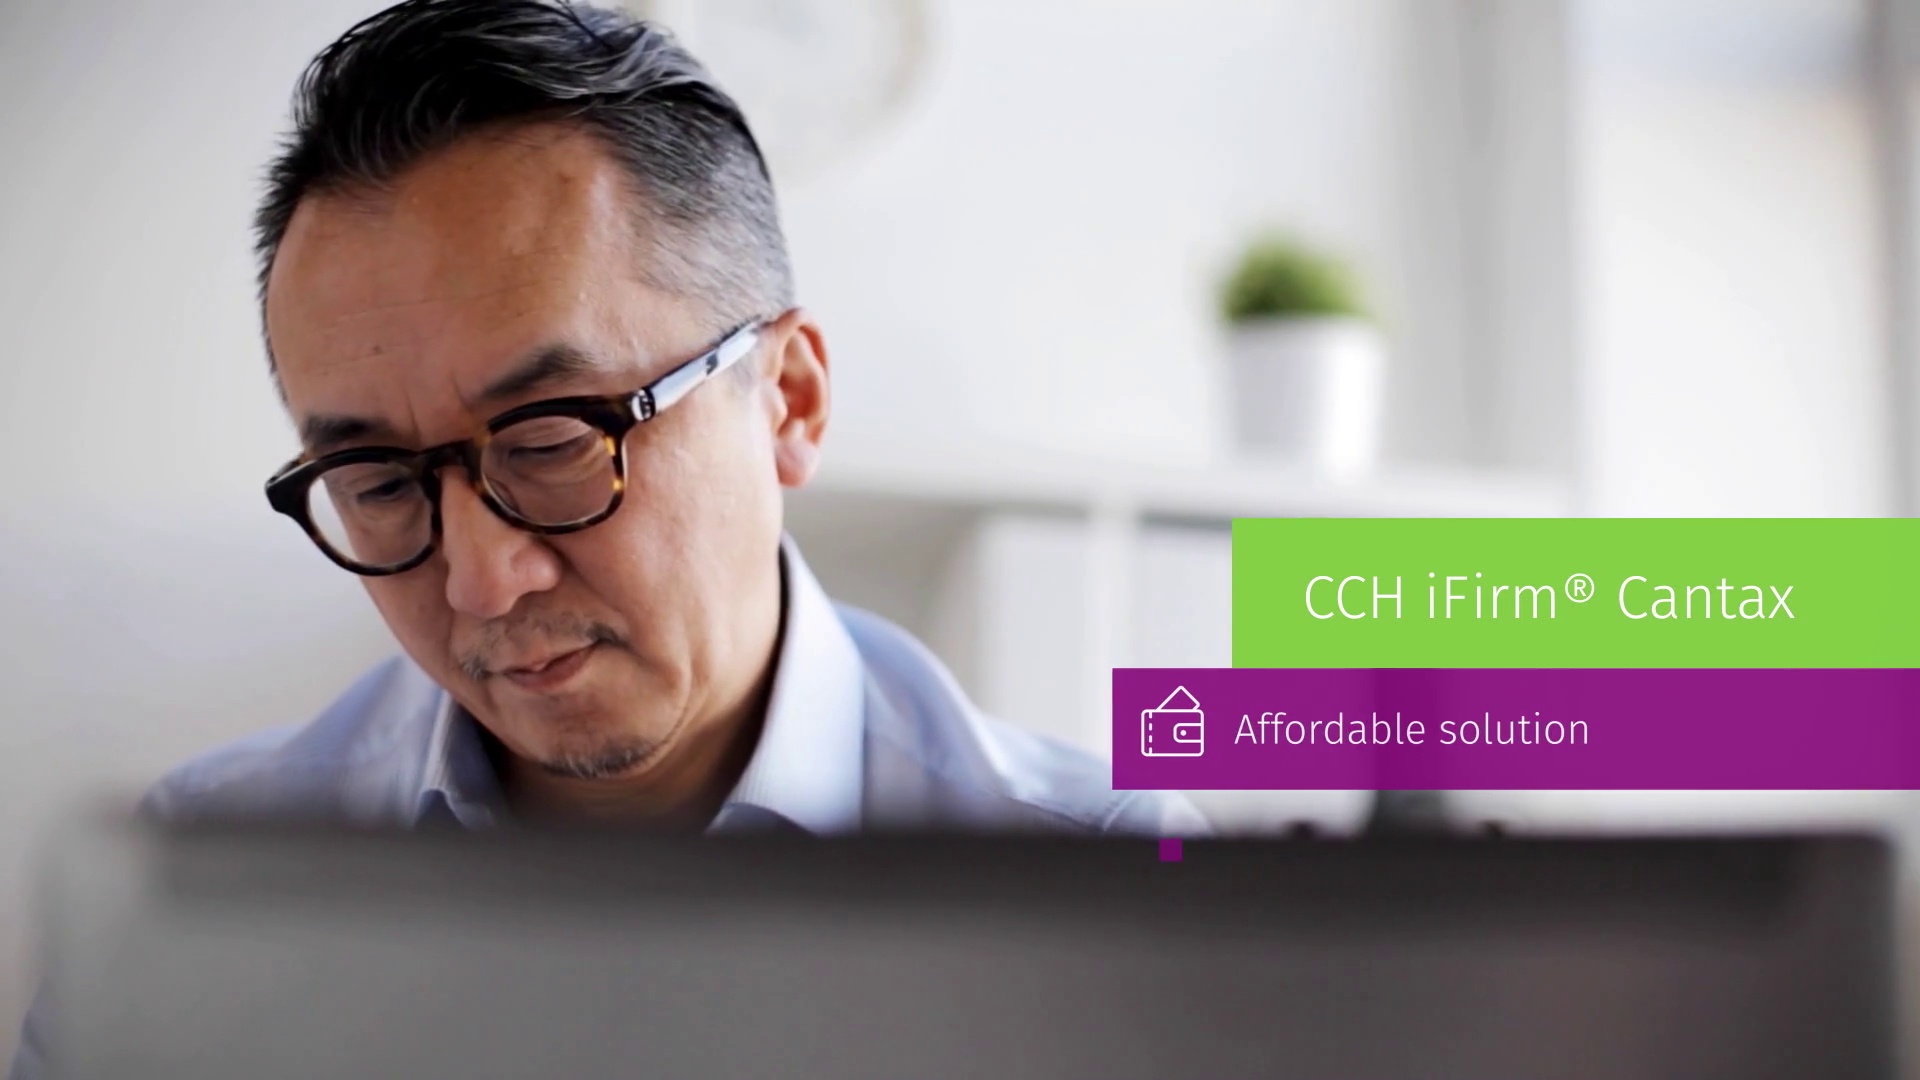 cch ifirm overview